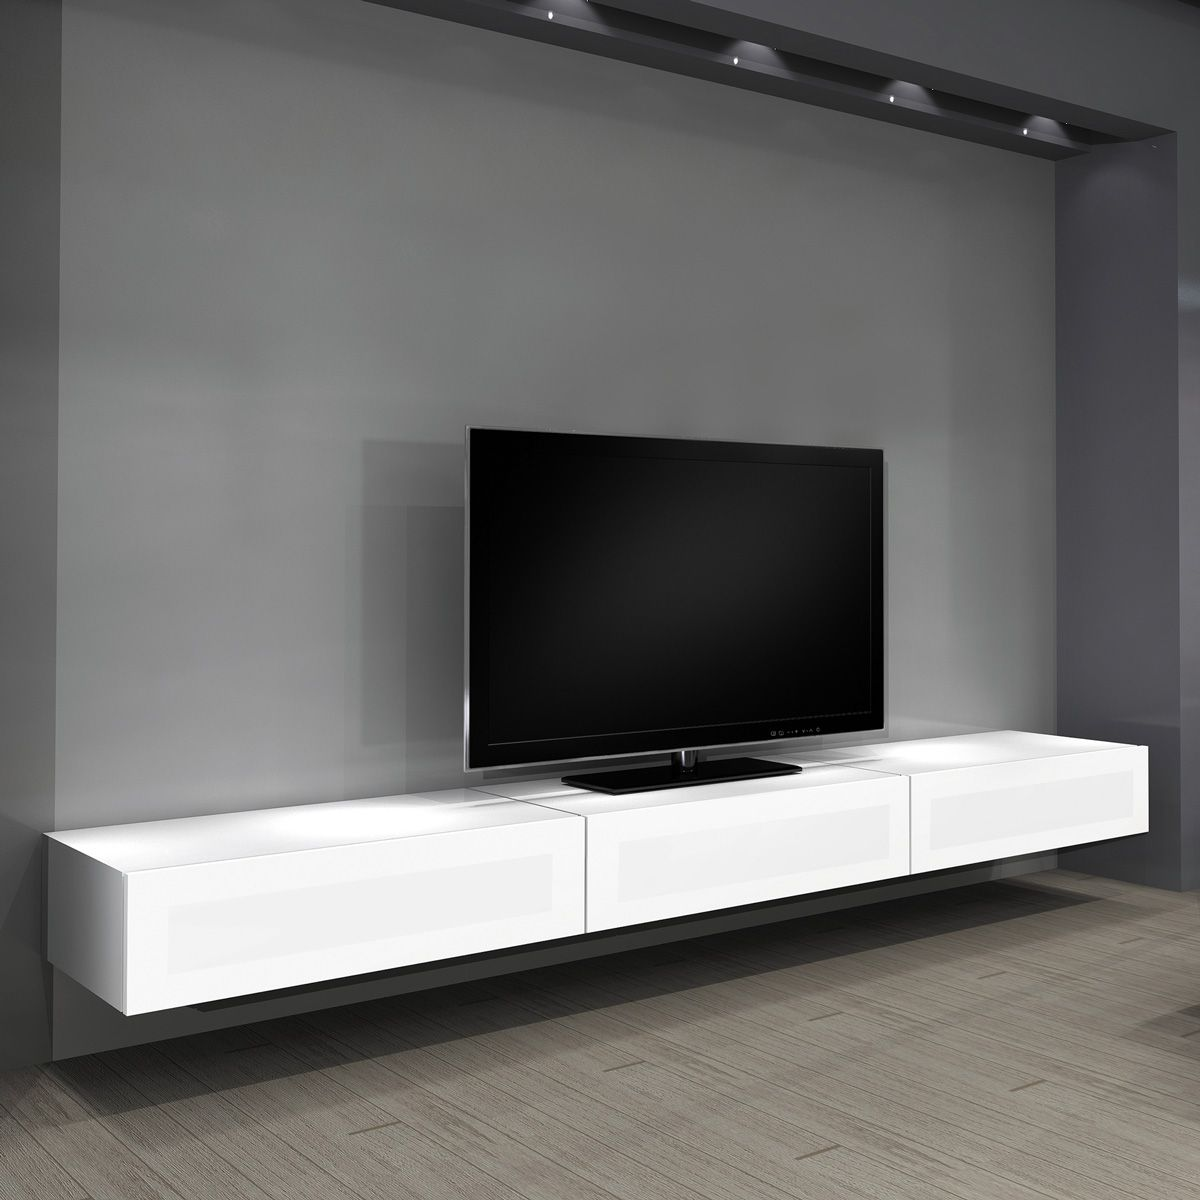 Floating Tv Cabinet Simple Modern Floating Entertainment Tv Cabinet With Gray